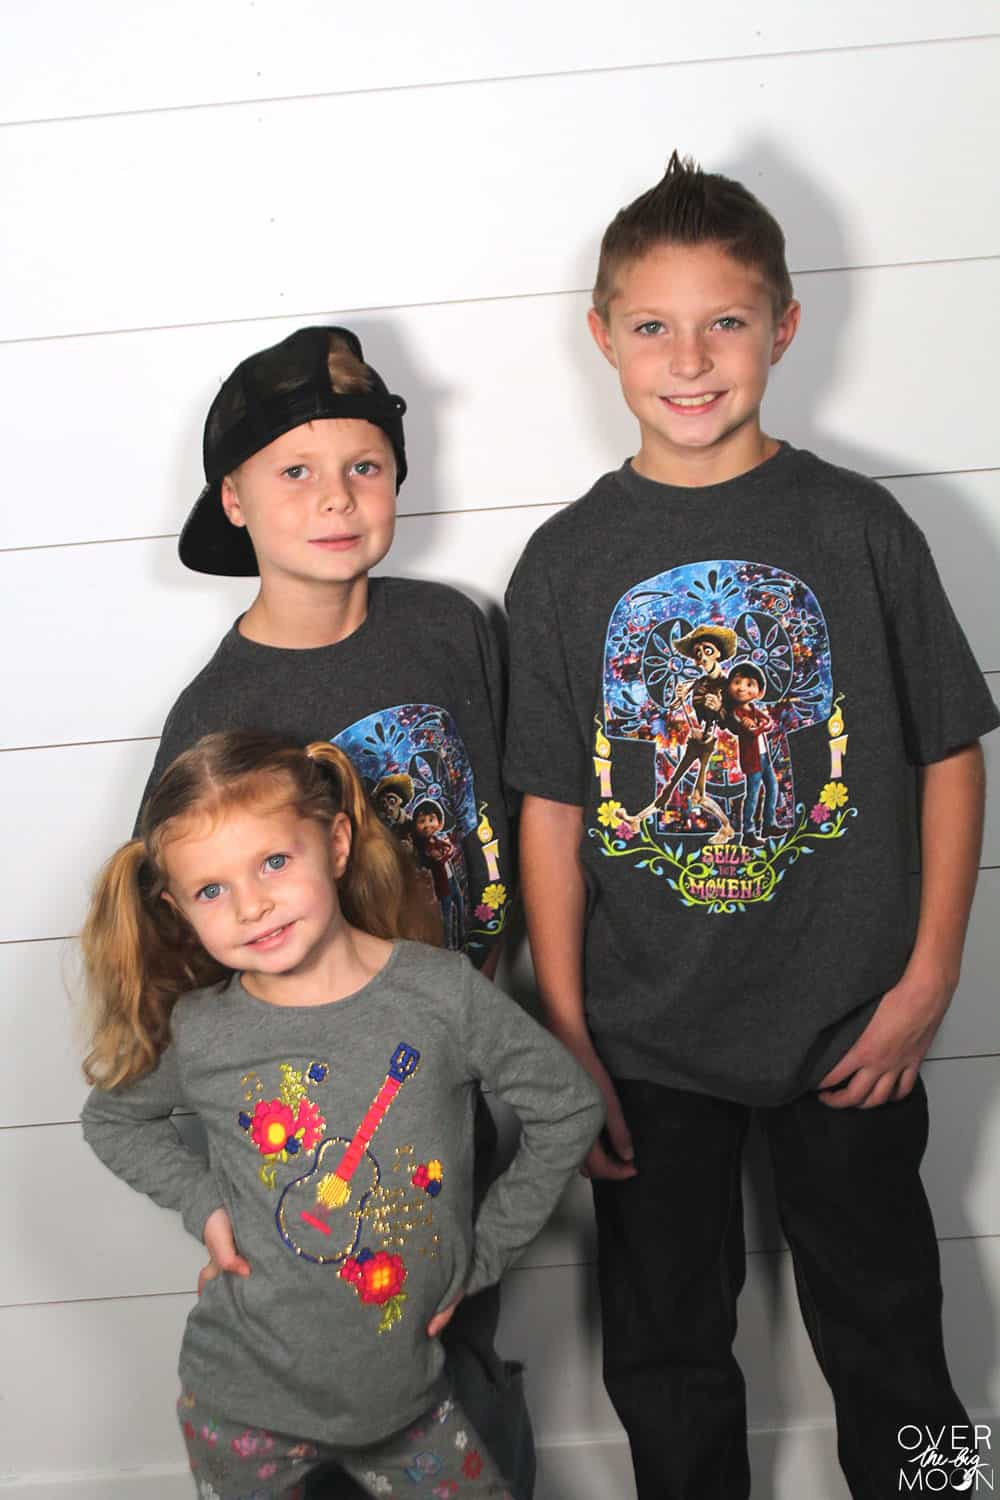 Disney Pixar Coco Clothes at Kohl's - they're all so cute and in all sizes! From overthebigmoon.com!